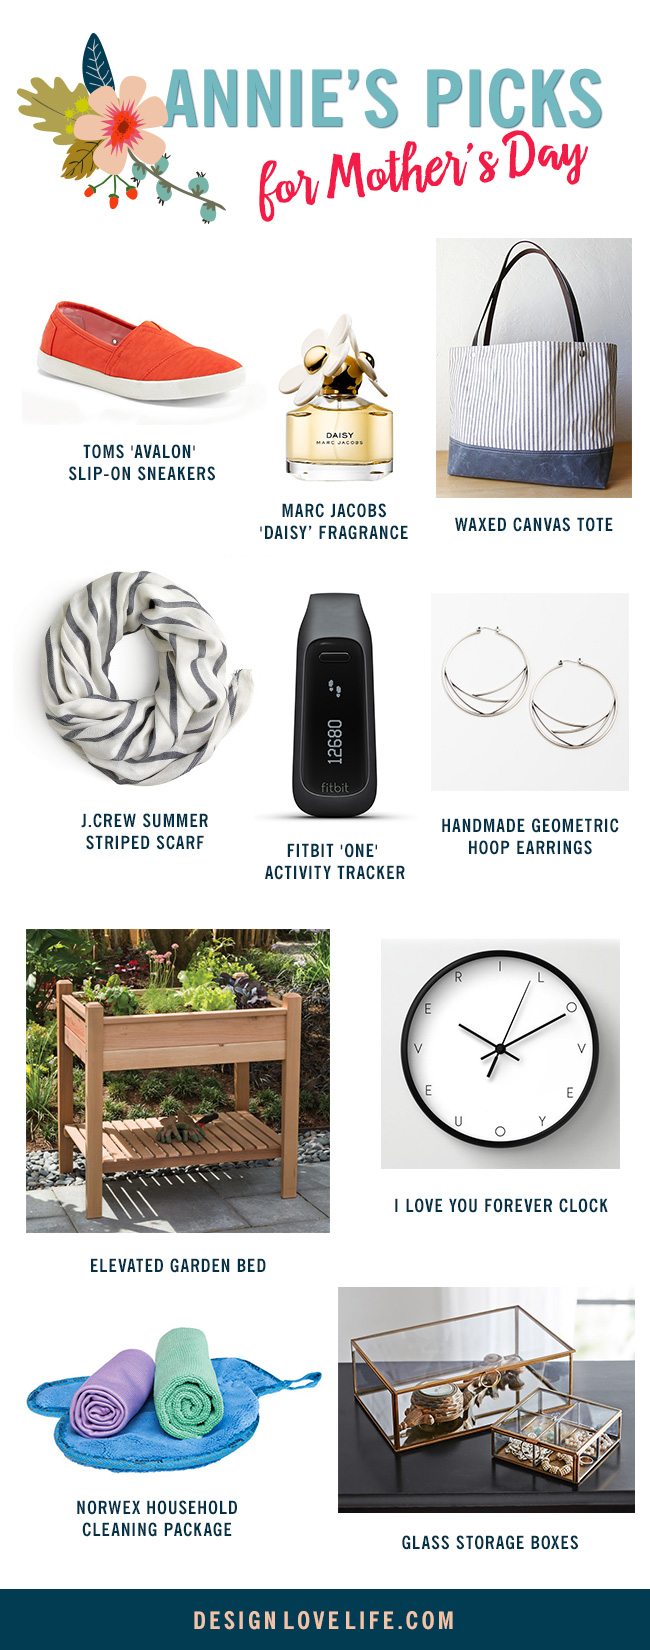 Annie's Picks for Mother's Day!